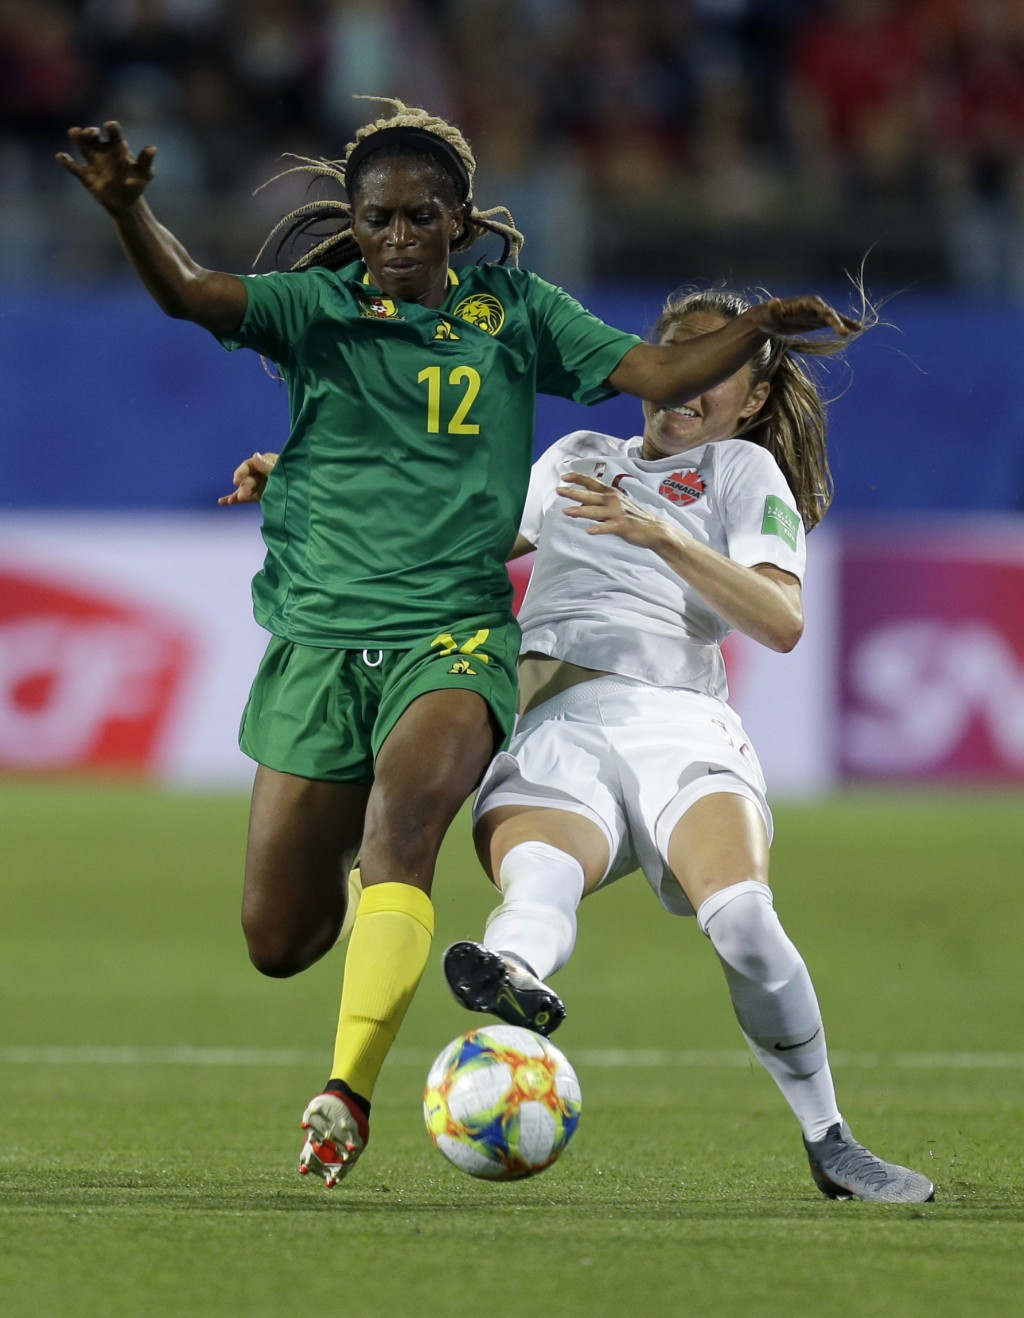 Cameroon's Claudine Meffometou, left, and Canada's Janine Beckie battle for the ball during the Women's World Cup Group E soccer match between Canada